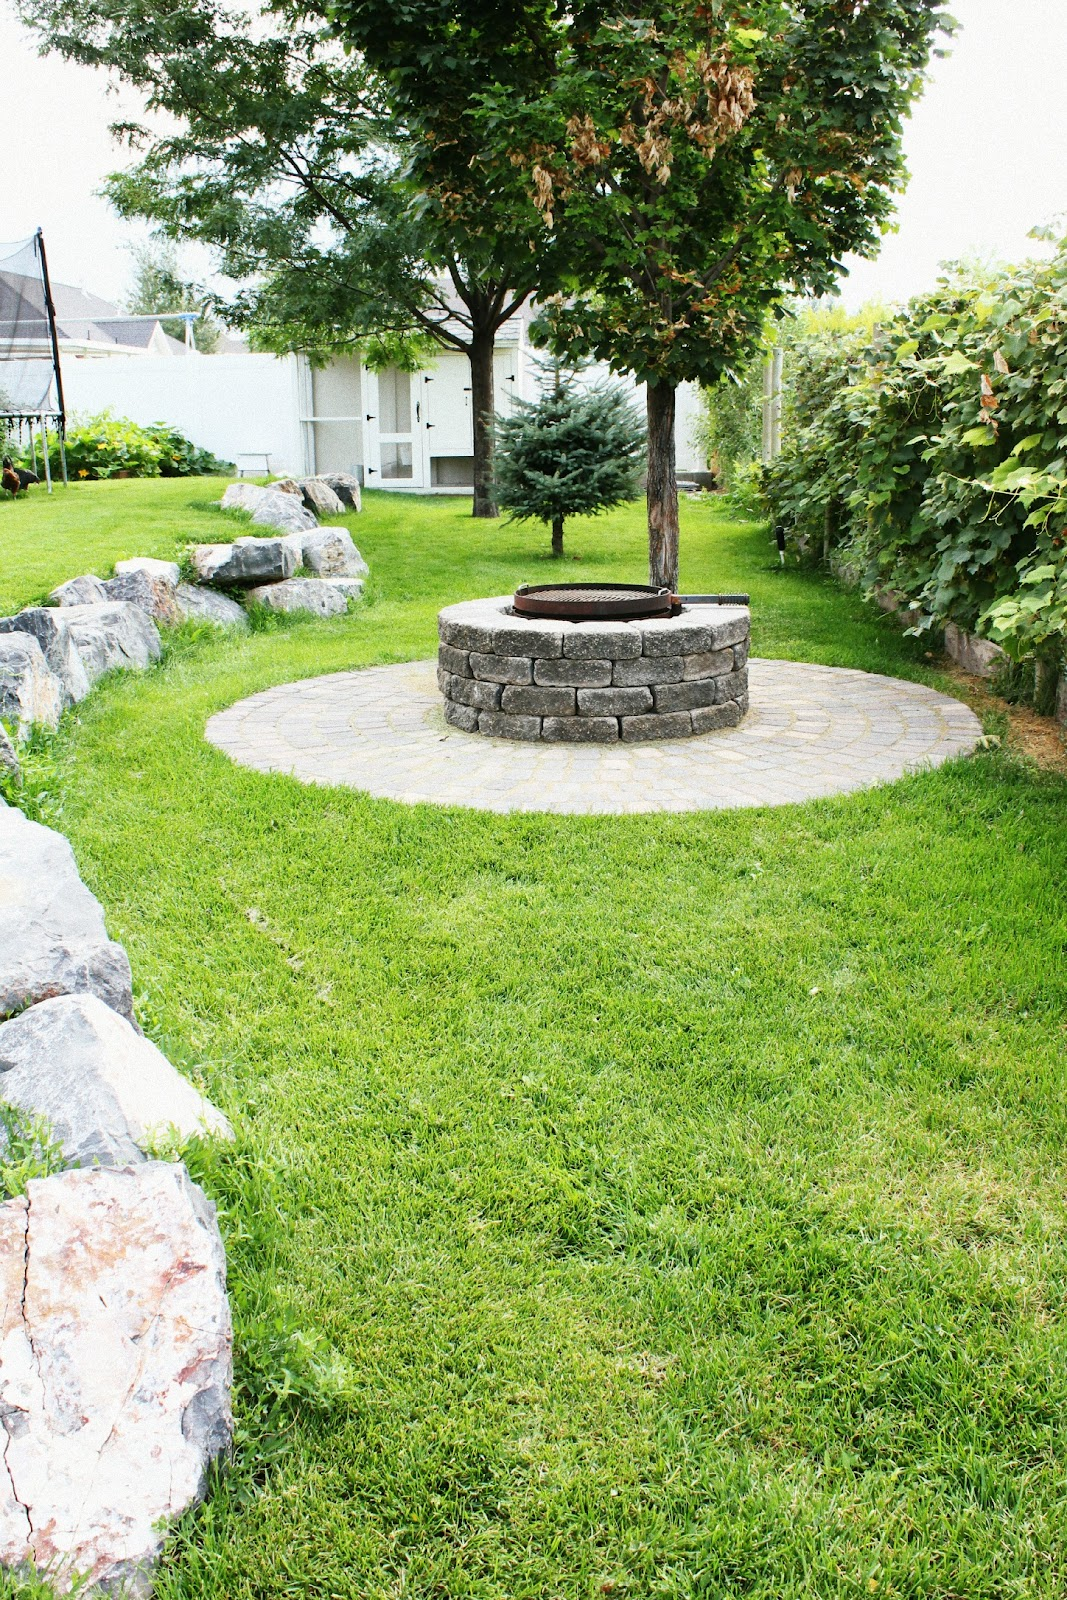 1000+ images about Backyard Fire Pits on Pinterest   Fire ...